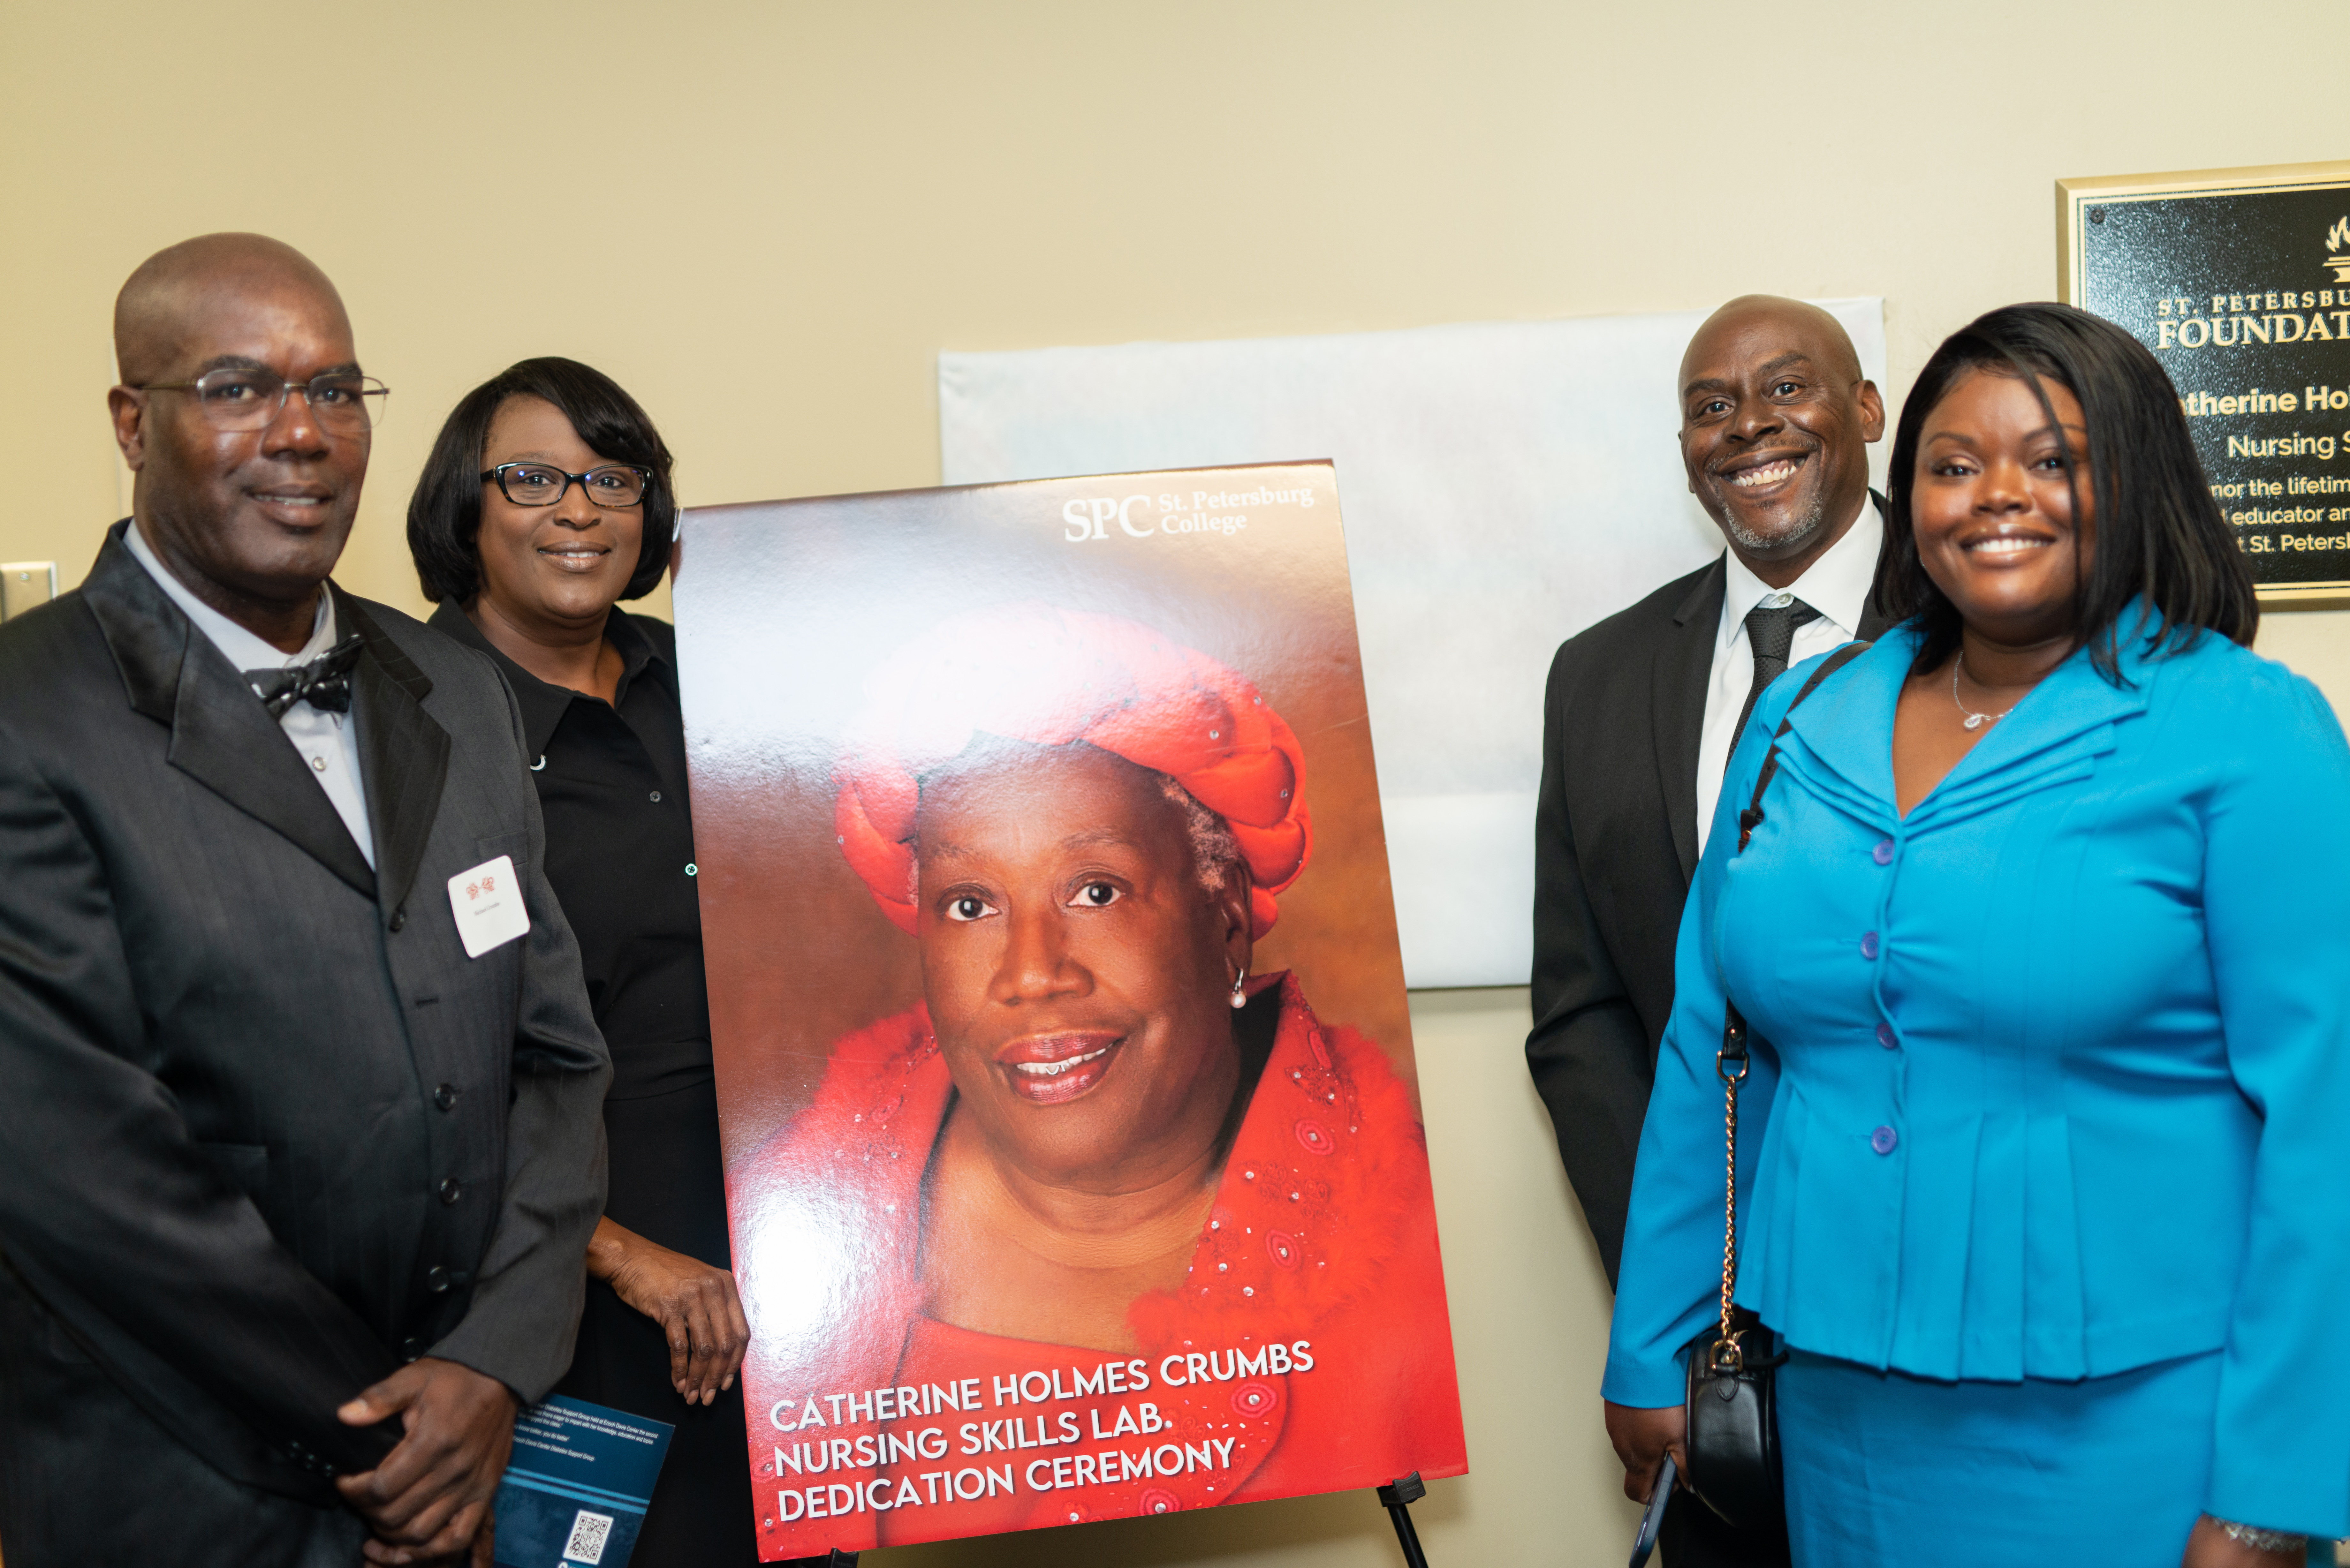 Four people including Dr. Williams stand next to a poster featuring the smiling face of Catherine Holmes Crumbs.